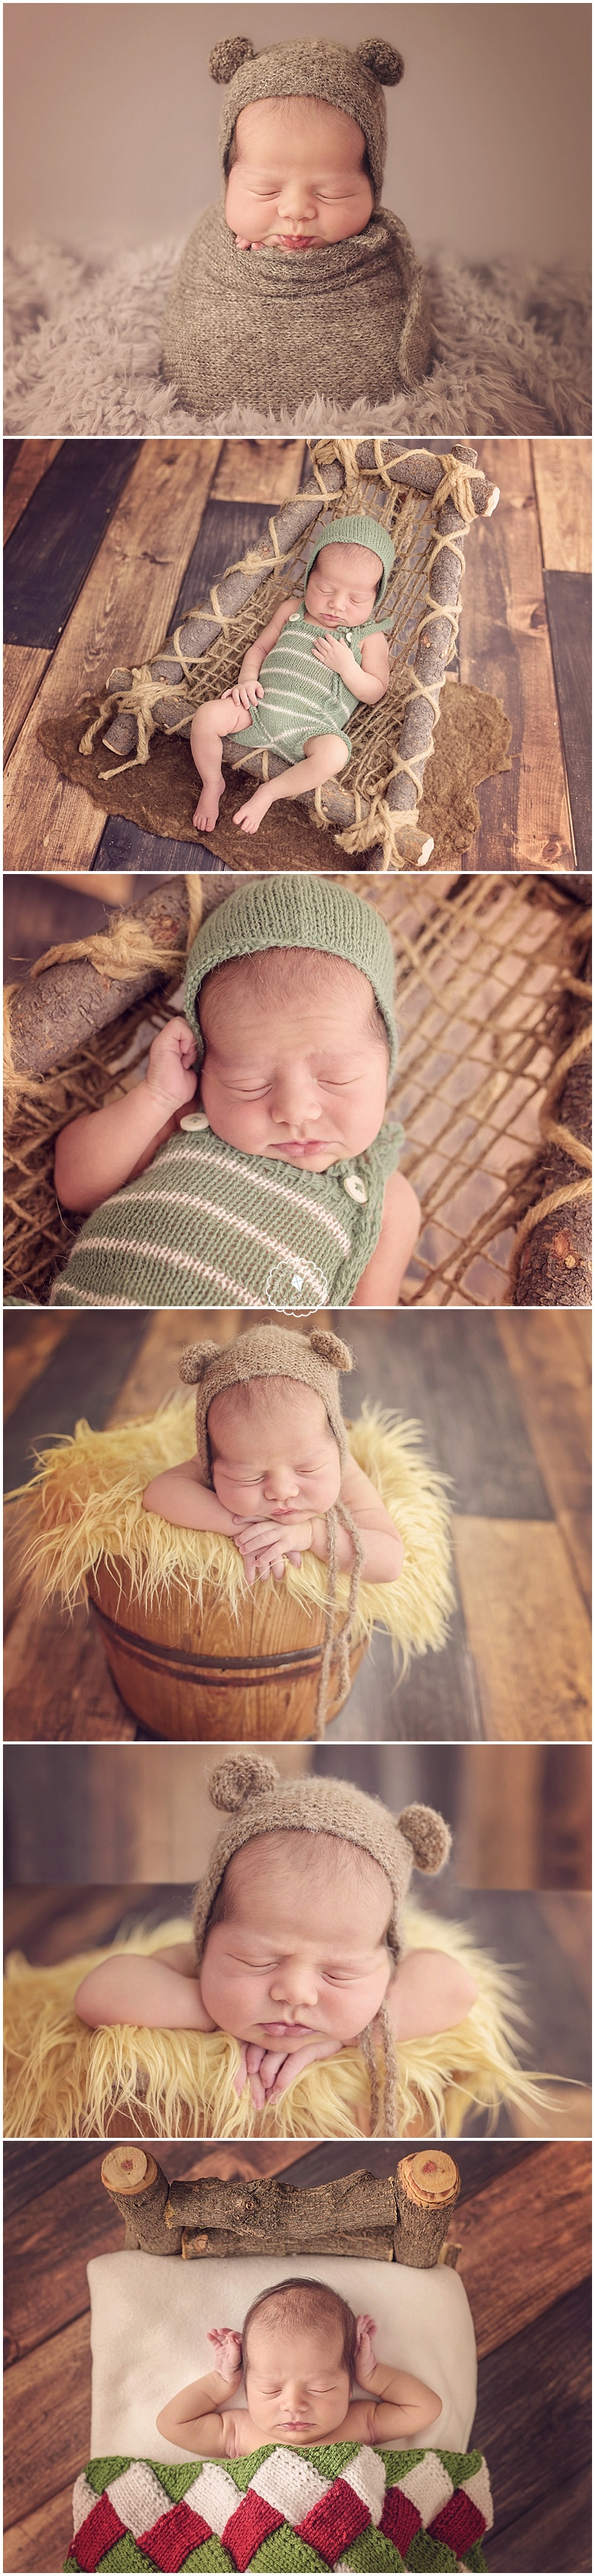 Boca Raton Newborn Photographer, Coral Springs, Delray, Parkland, Boynton Beach, Wellington Newborn Photographer.